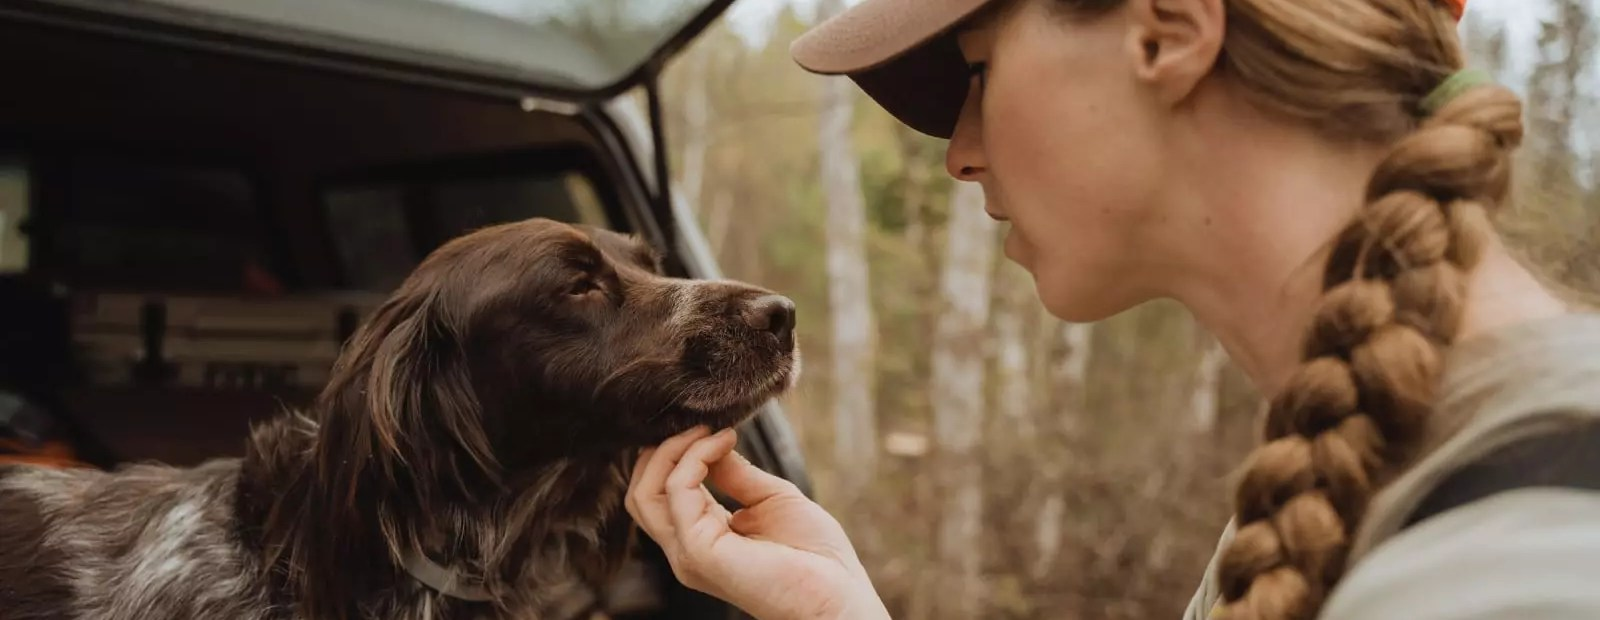 A woman looks at a bird dog.